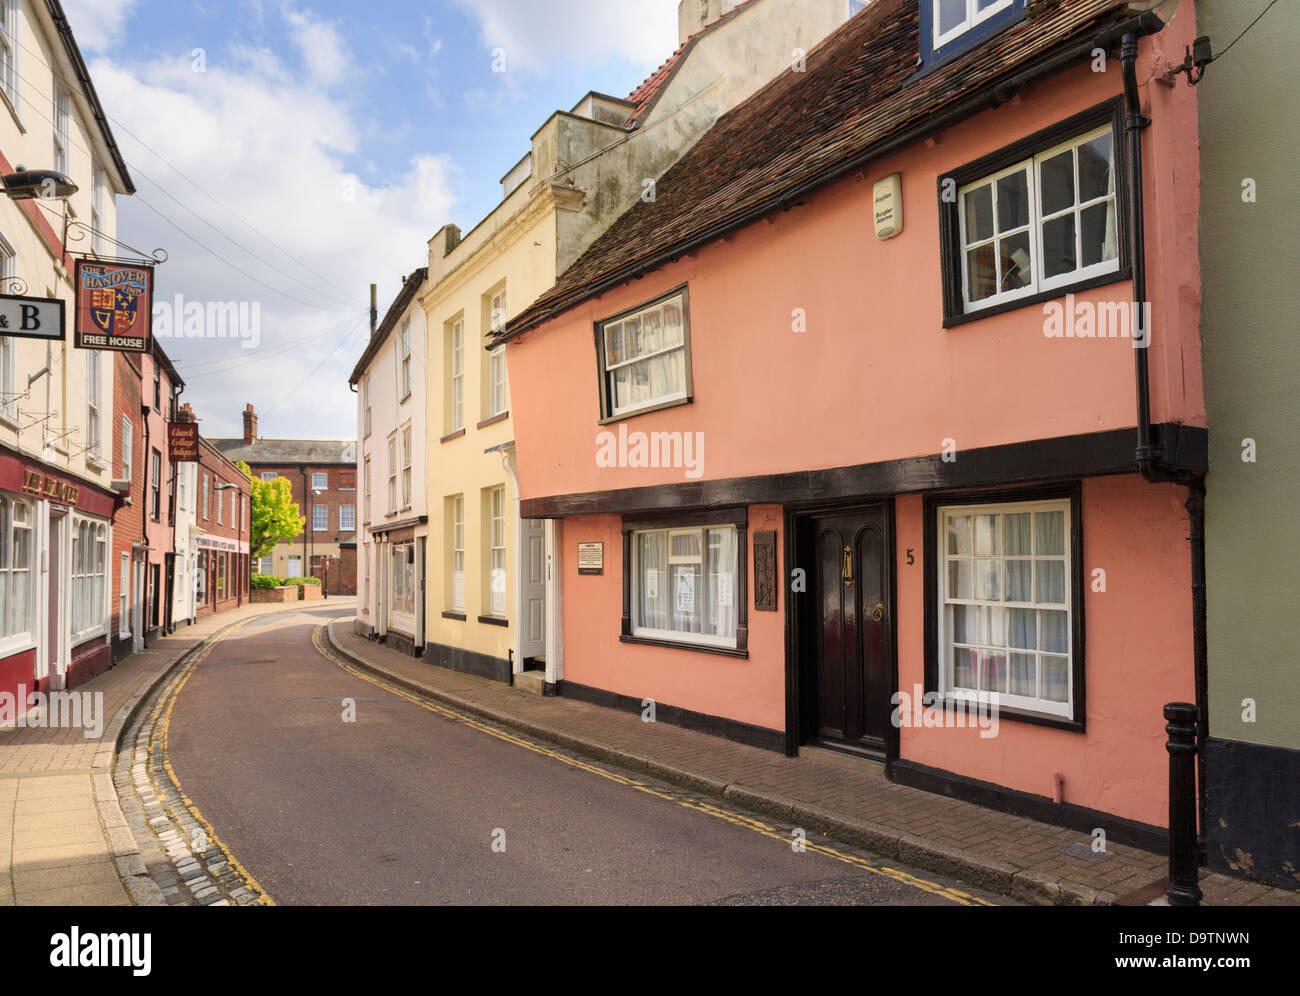 15th century Foresters circa 1450 is said to be oldest house in the town. Church Street, Harwich, Essex, England, - Stock Image